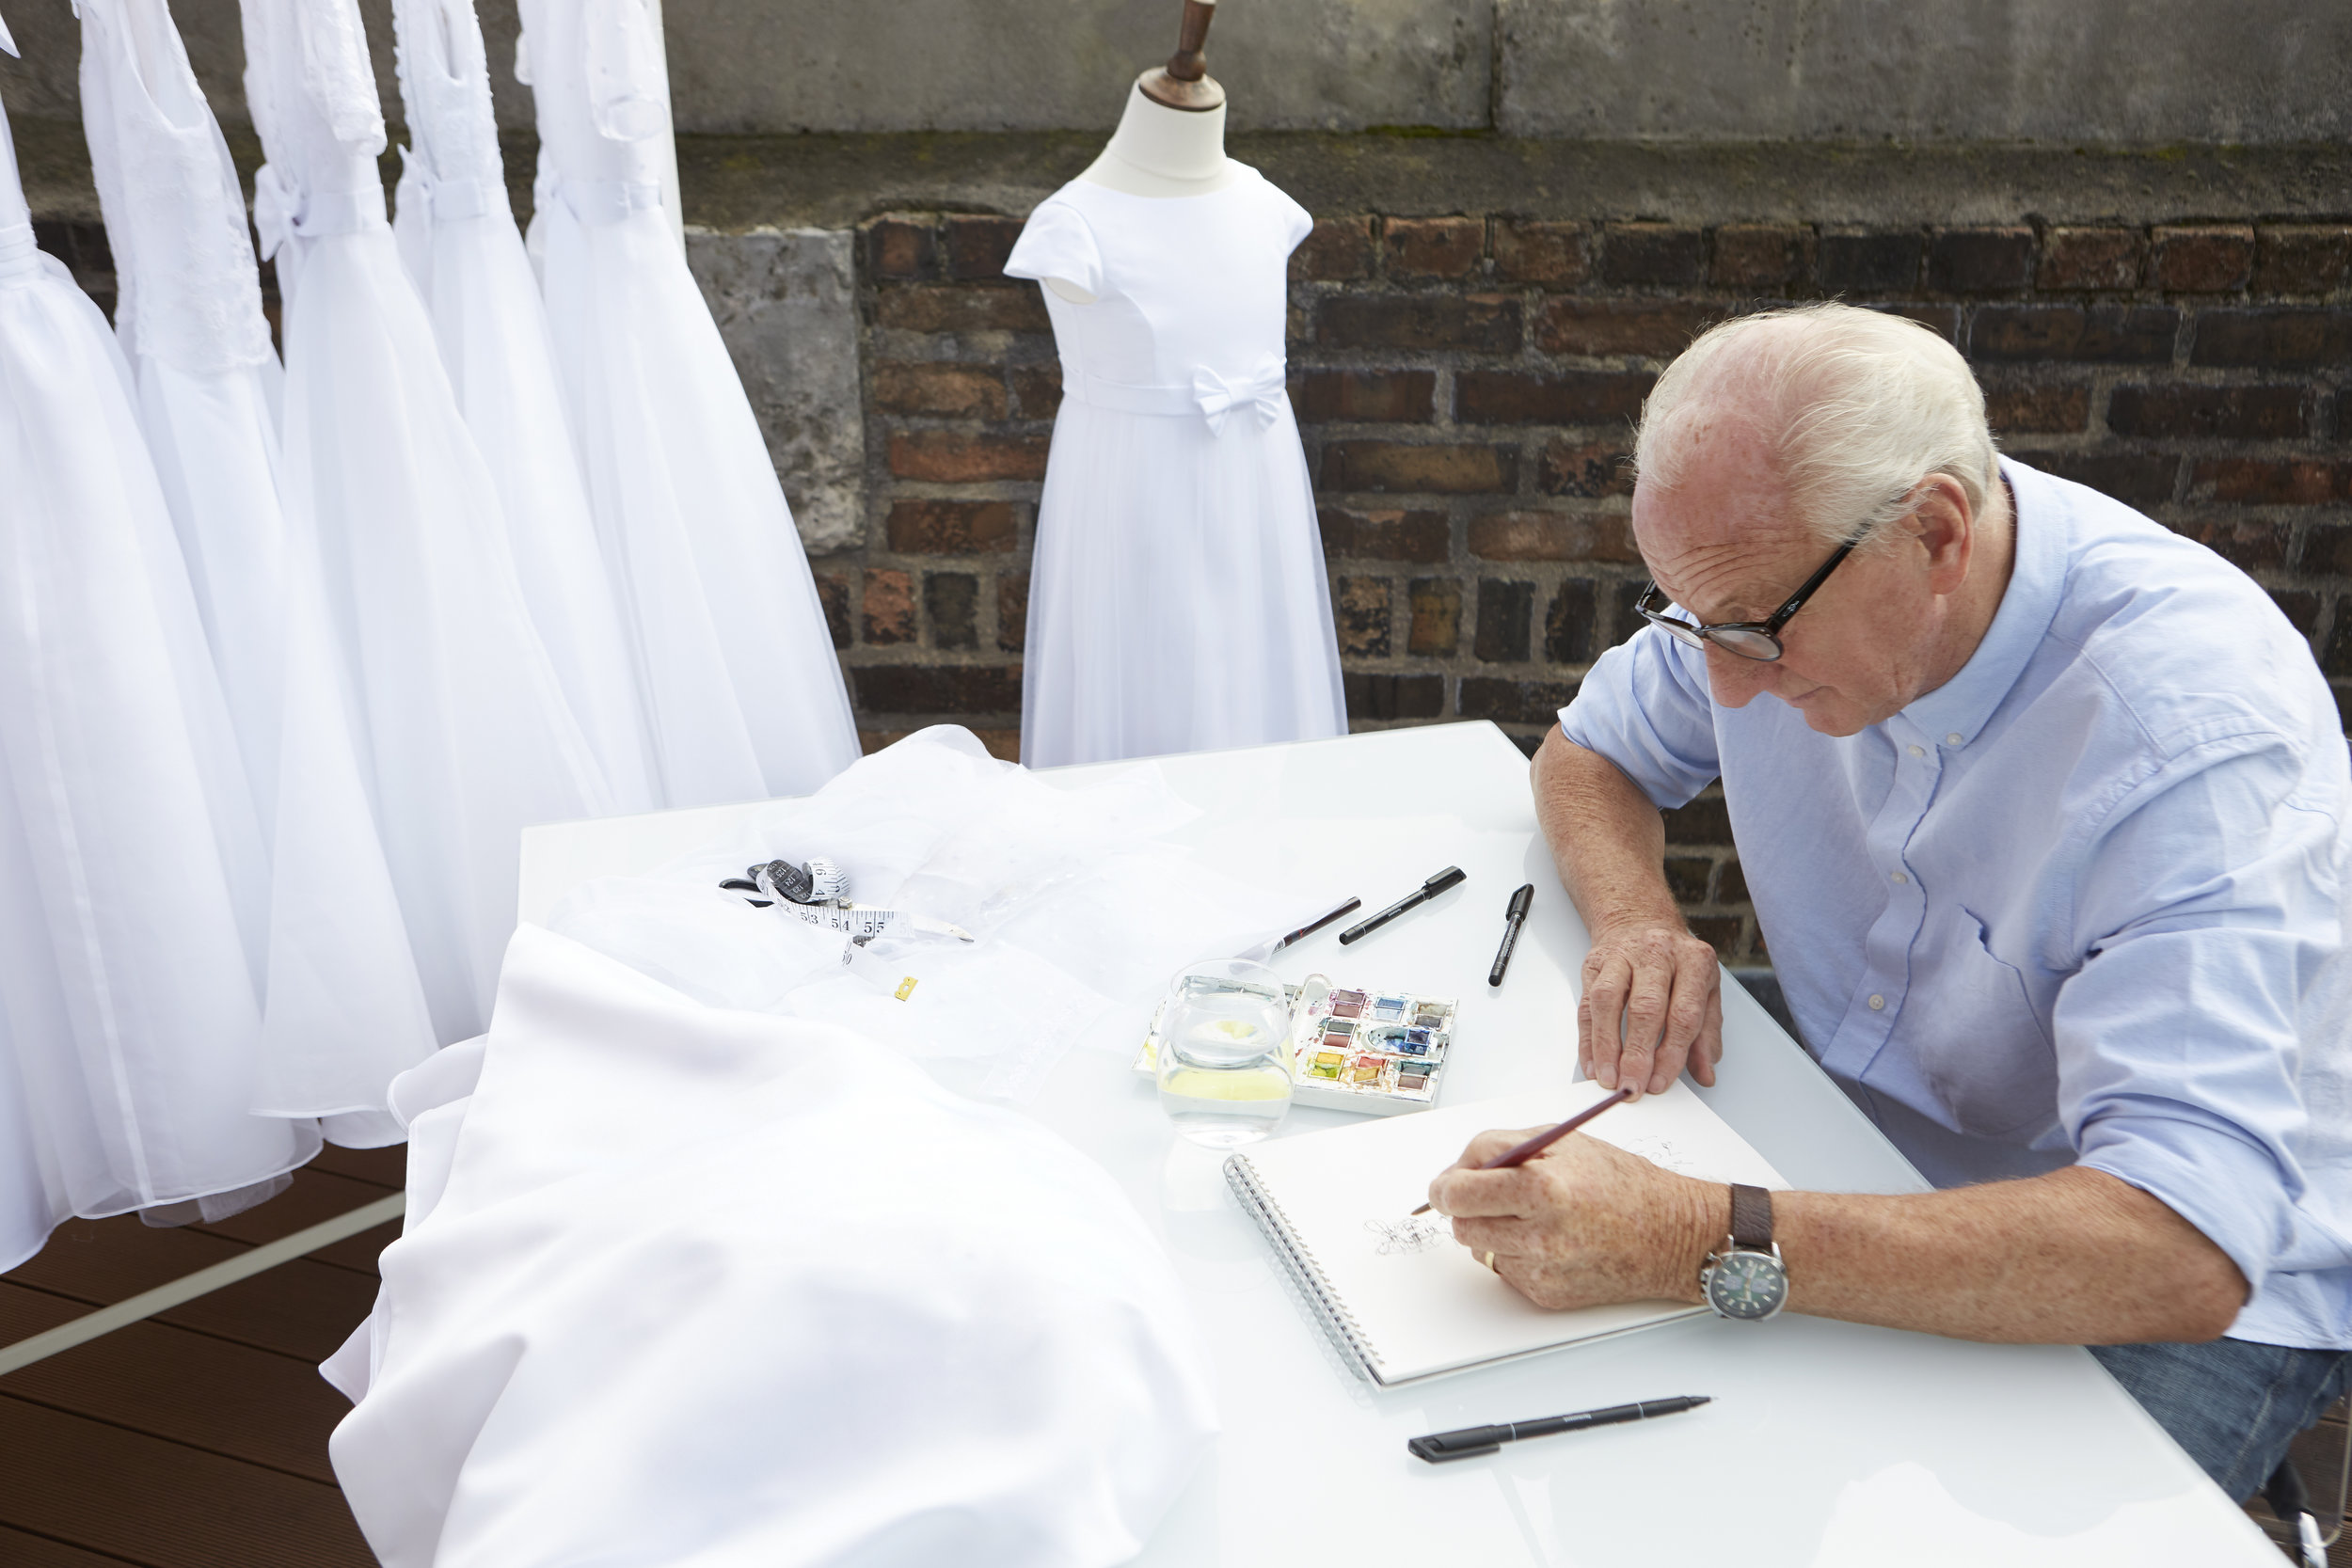 Paul Costelloe Sketching.jpg